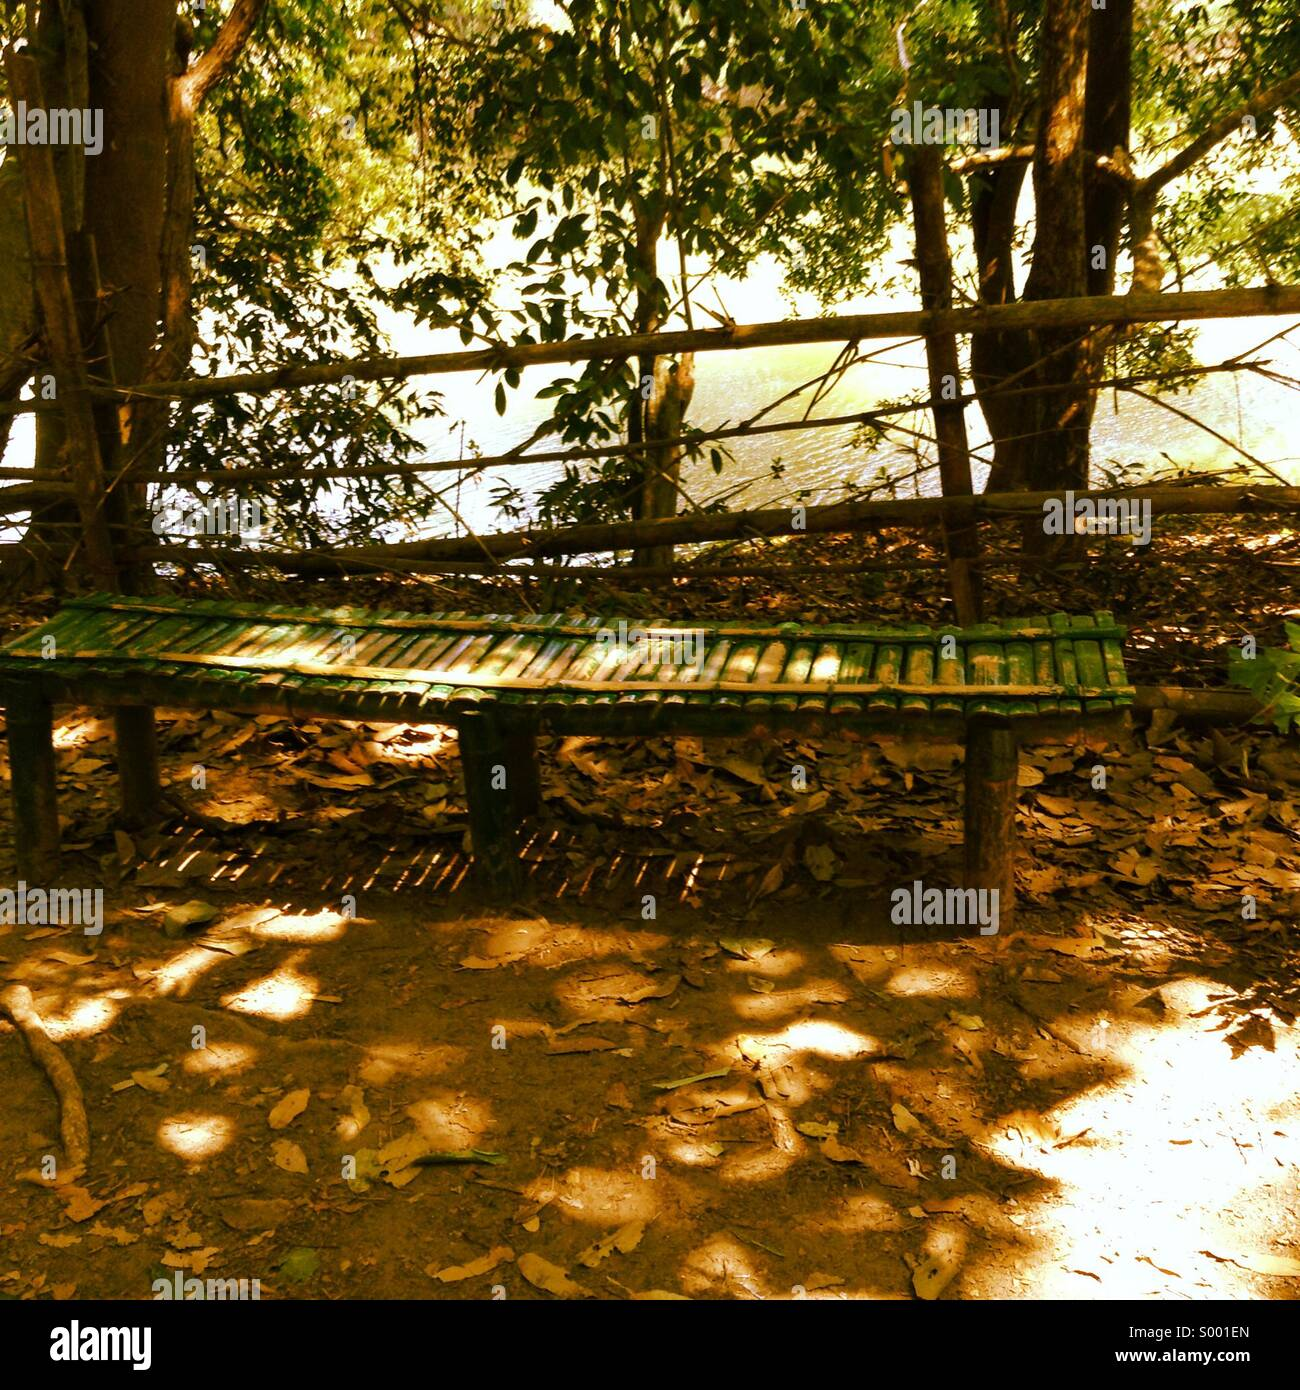 Long wooden bench in a park - Stock Image